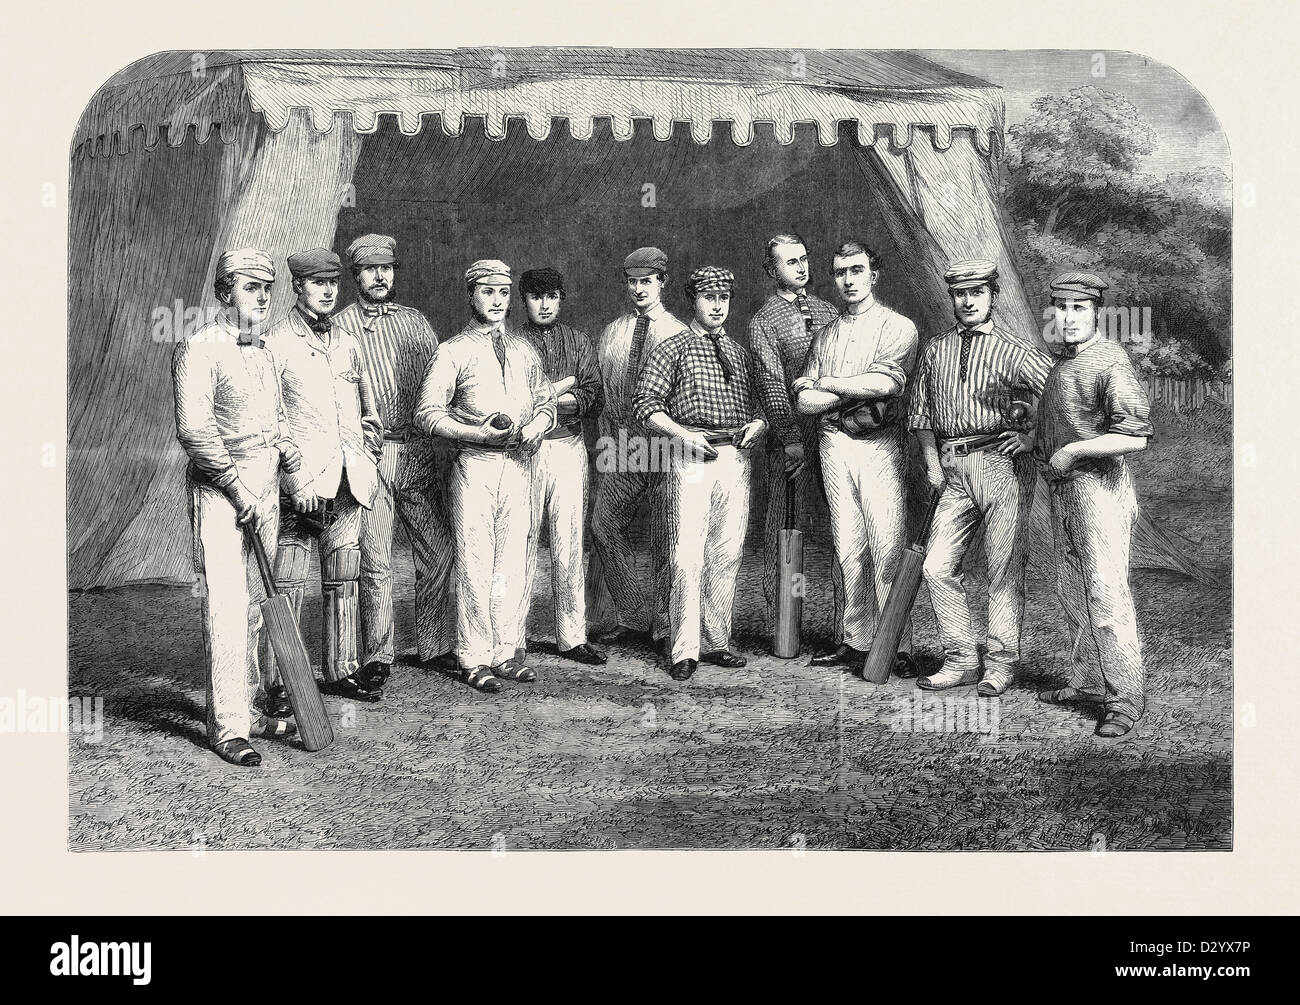 THE SURREY ELEVEN W. MORTLOCK T. LOCKYER H.H. STEPHENSON W. CAFFYN G. GRIFFITH - Stock Image